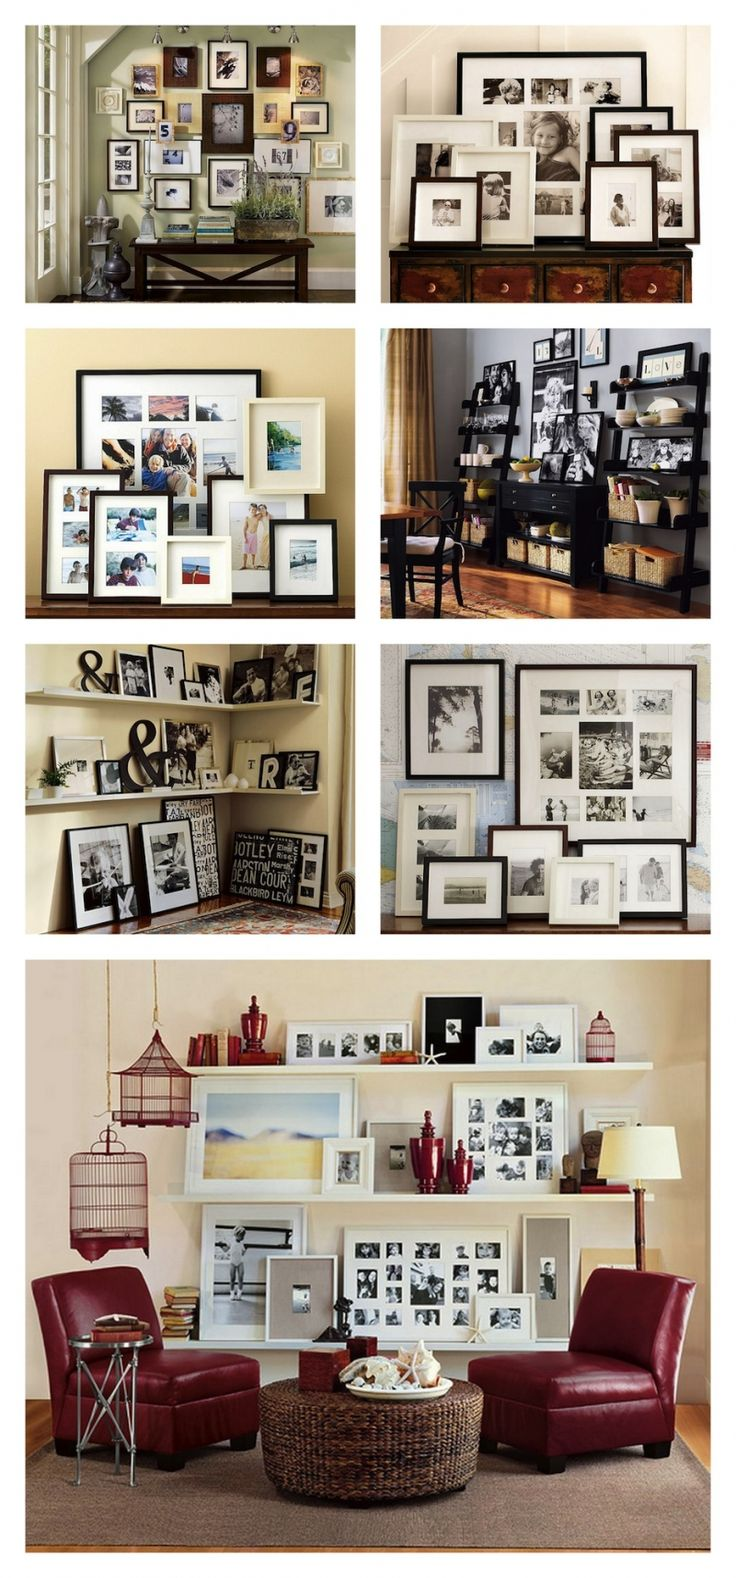 Wall Displays inspired from Pottery Barn photo